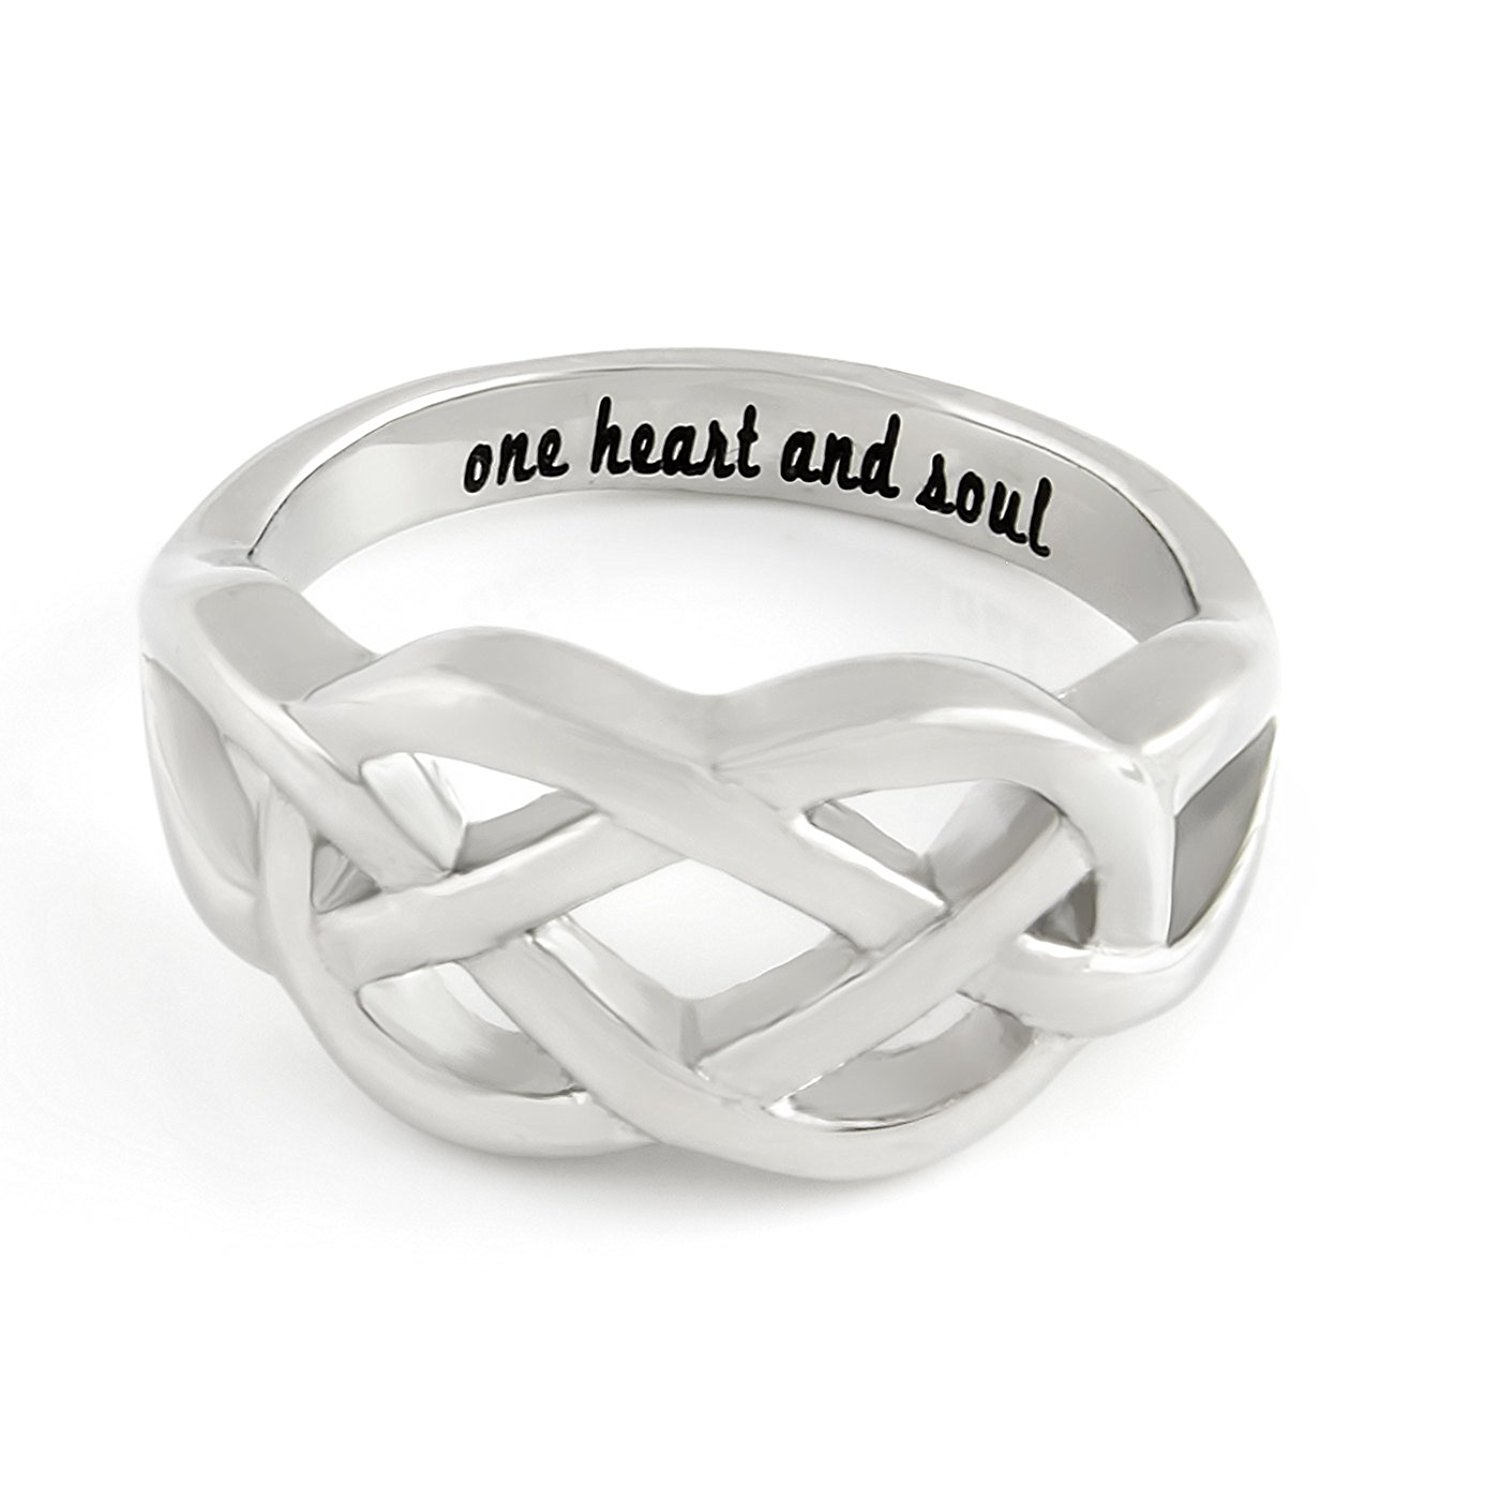 Cheap Infinity Heart Ring Find Infinity Heart Ring Deals On Line At